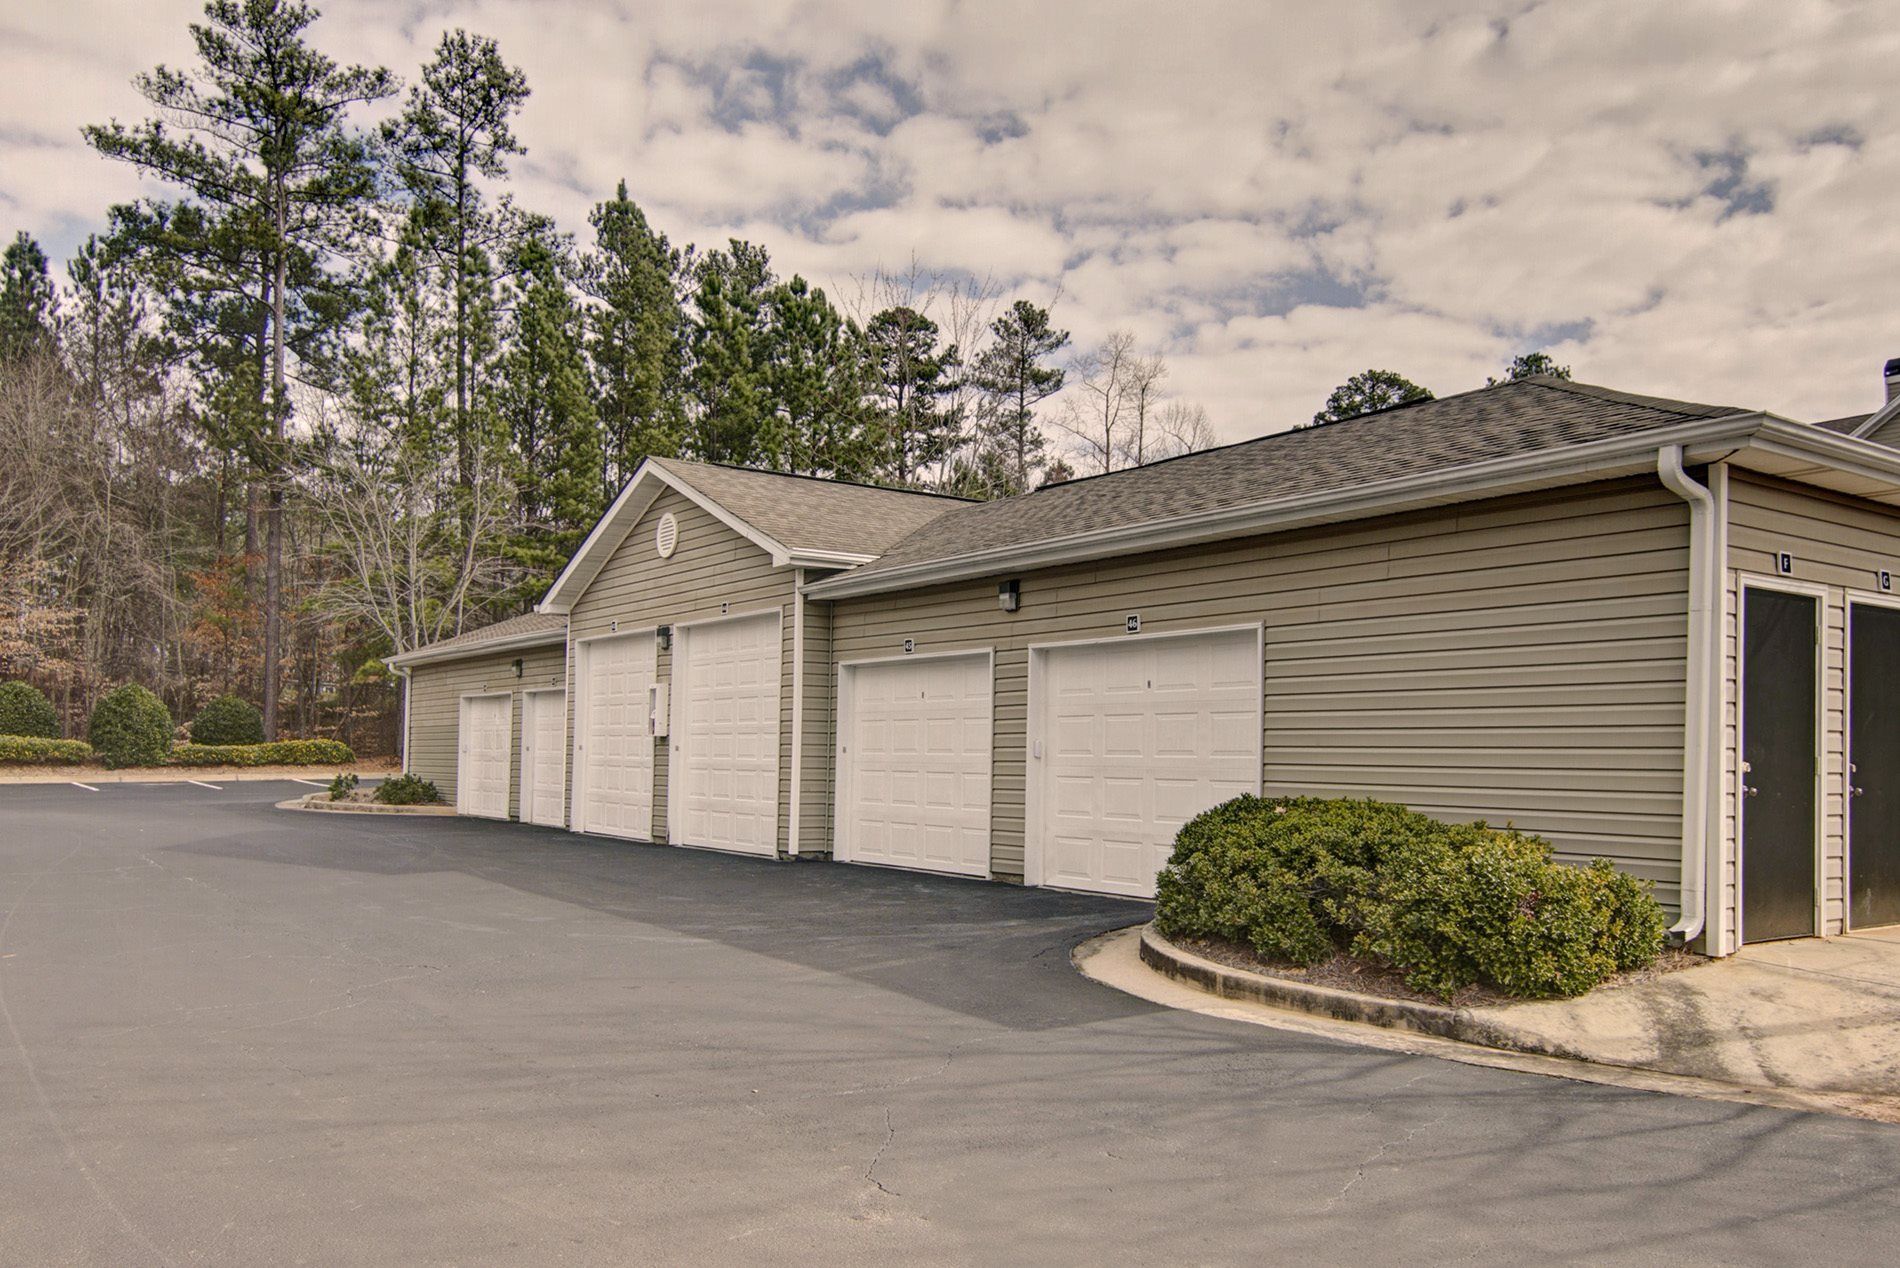 Photos and video of brentwood downs in lilburn ga for Apartment garage storage